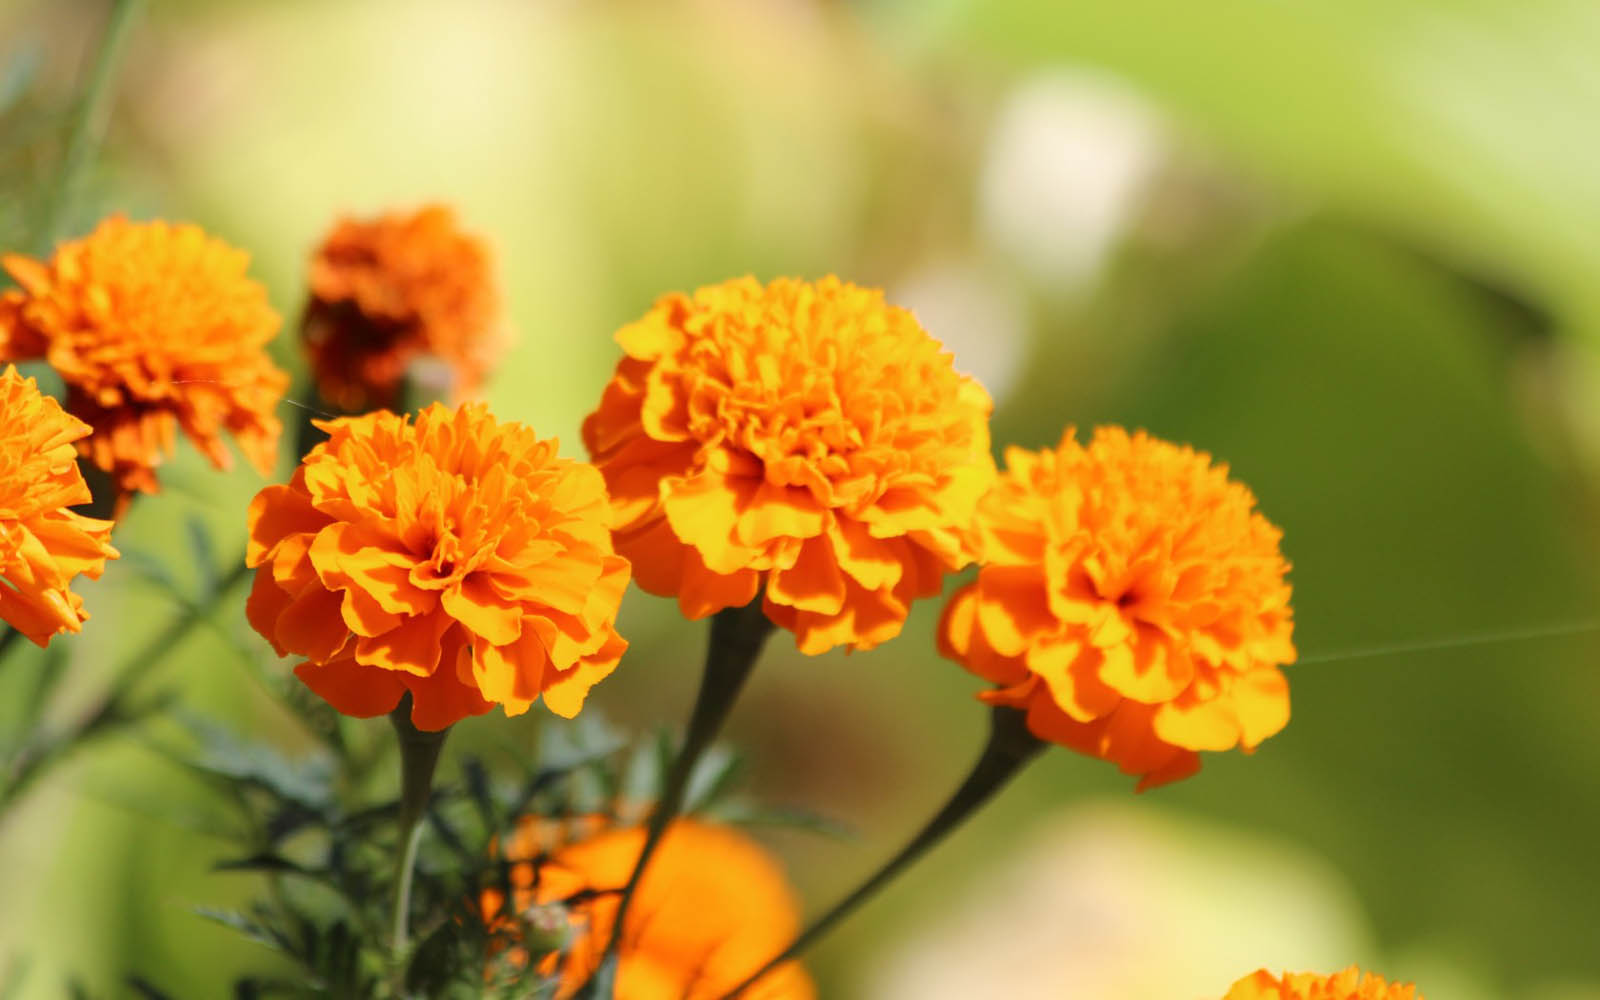 Top 10 Most Popular Flowers to Plant in Your Garden